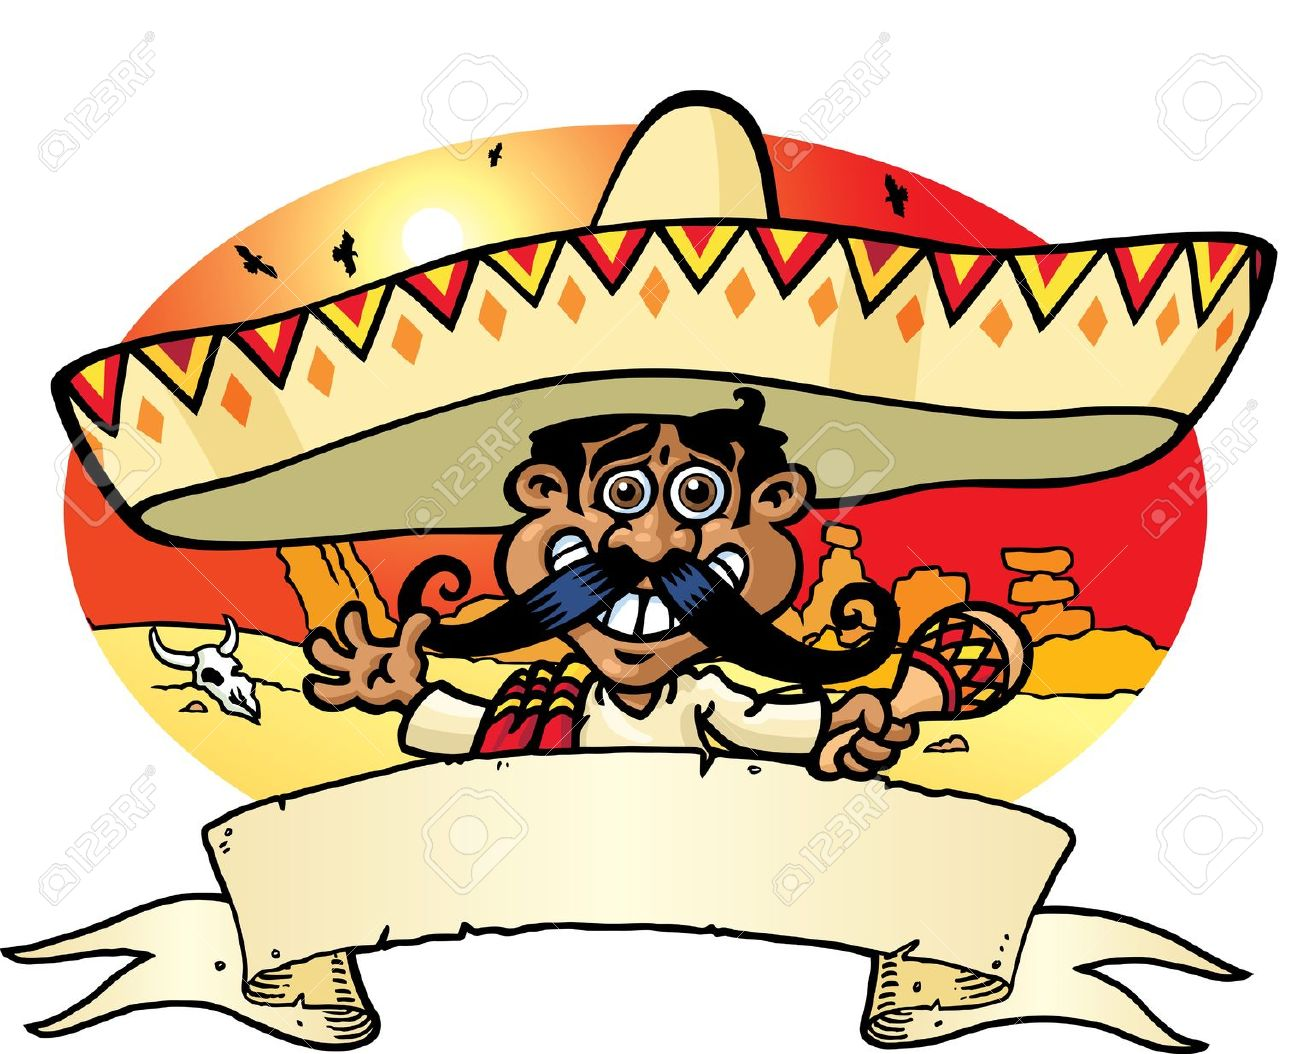 Mexican tarascos logos clipart people clipground for Mexican logos pictures